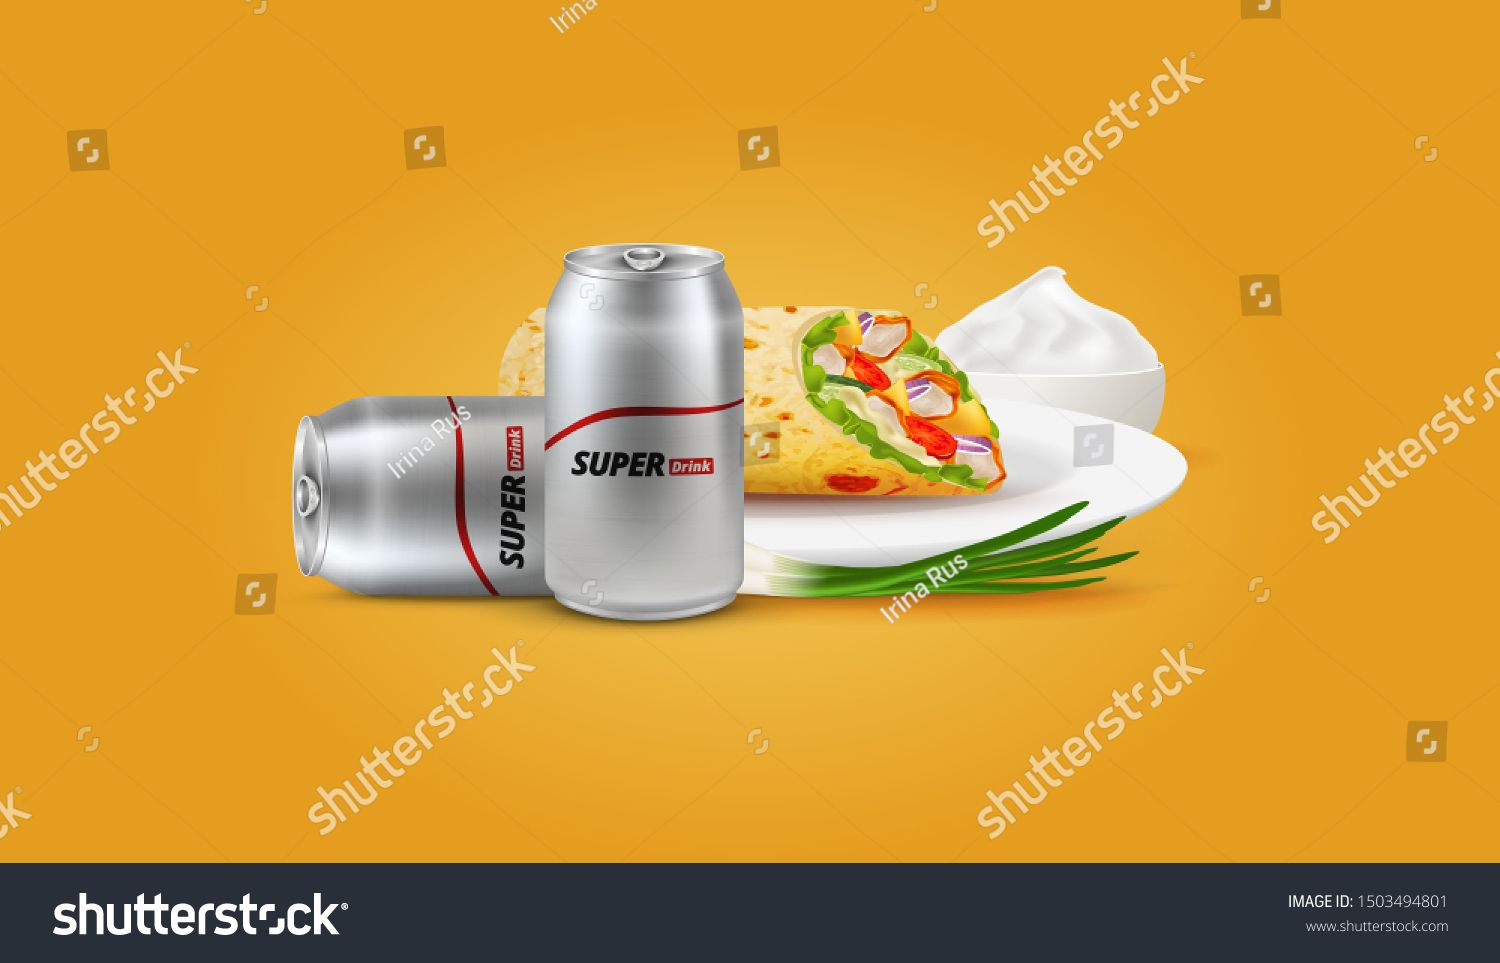 Vector Shawarma and Drink. Can, Beer. Meat and Vegetables. Tacos. Arab food. Pita. Dish. Plate. Sour Cream, Mayonnaise and onion. #Sponsored , #Sponsored, #Vegetables#Meat#Arab#Tacos